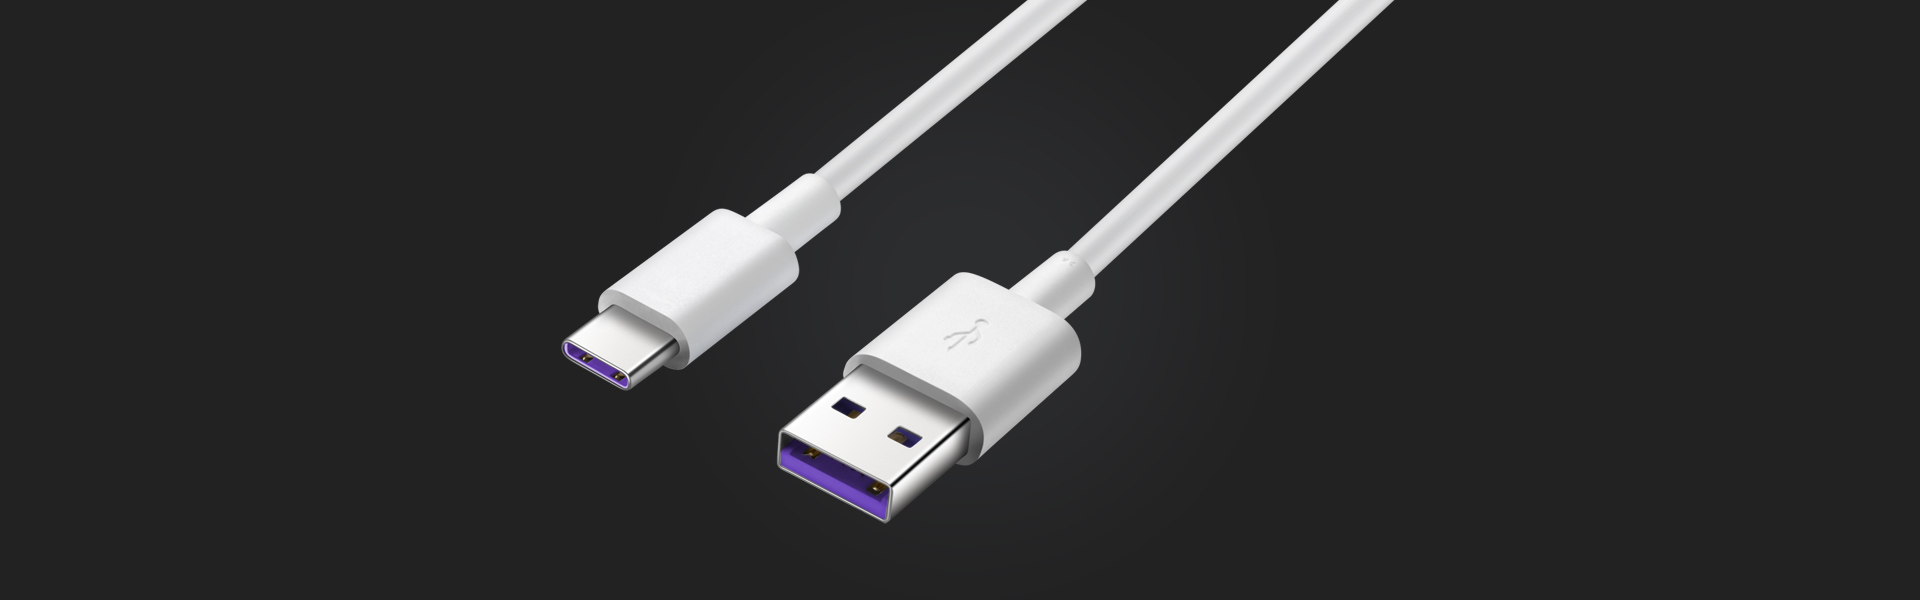 Inklusive 5A-USB-C-Kabel